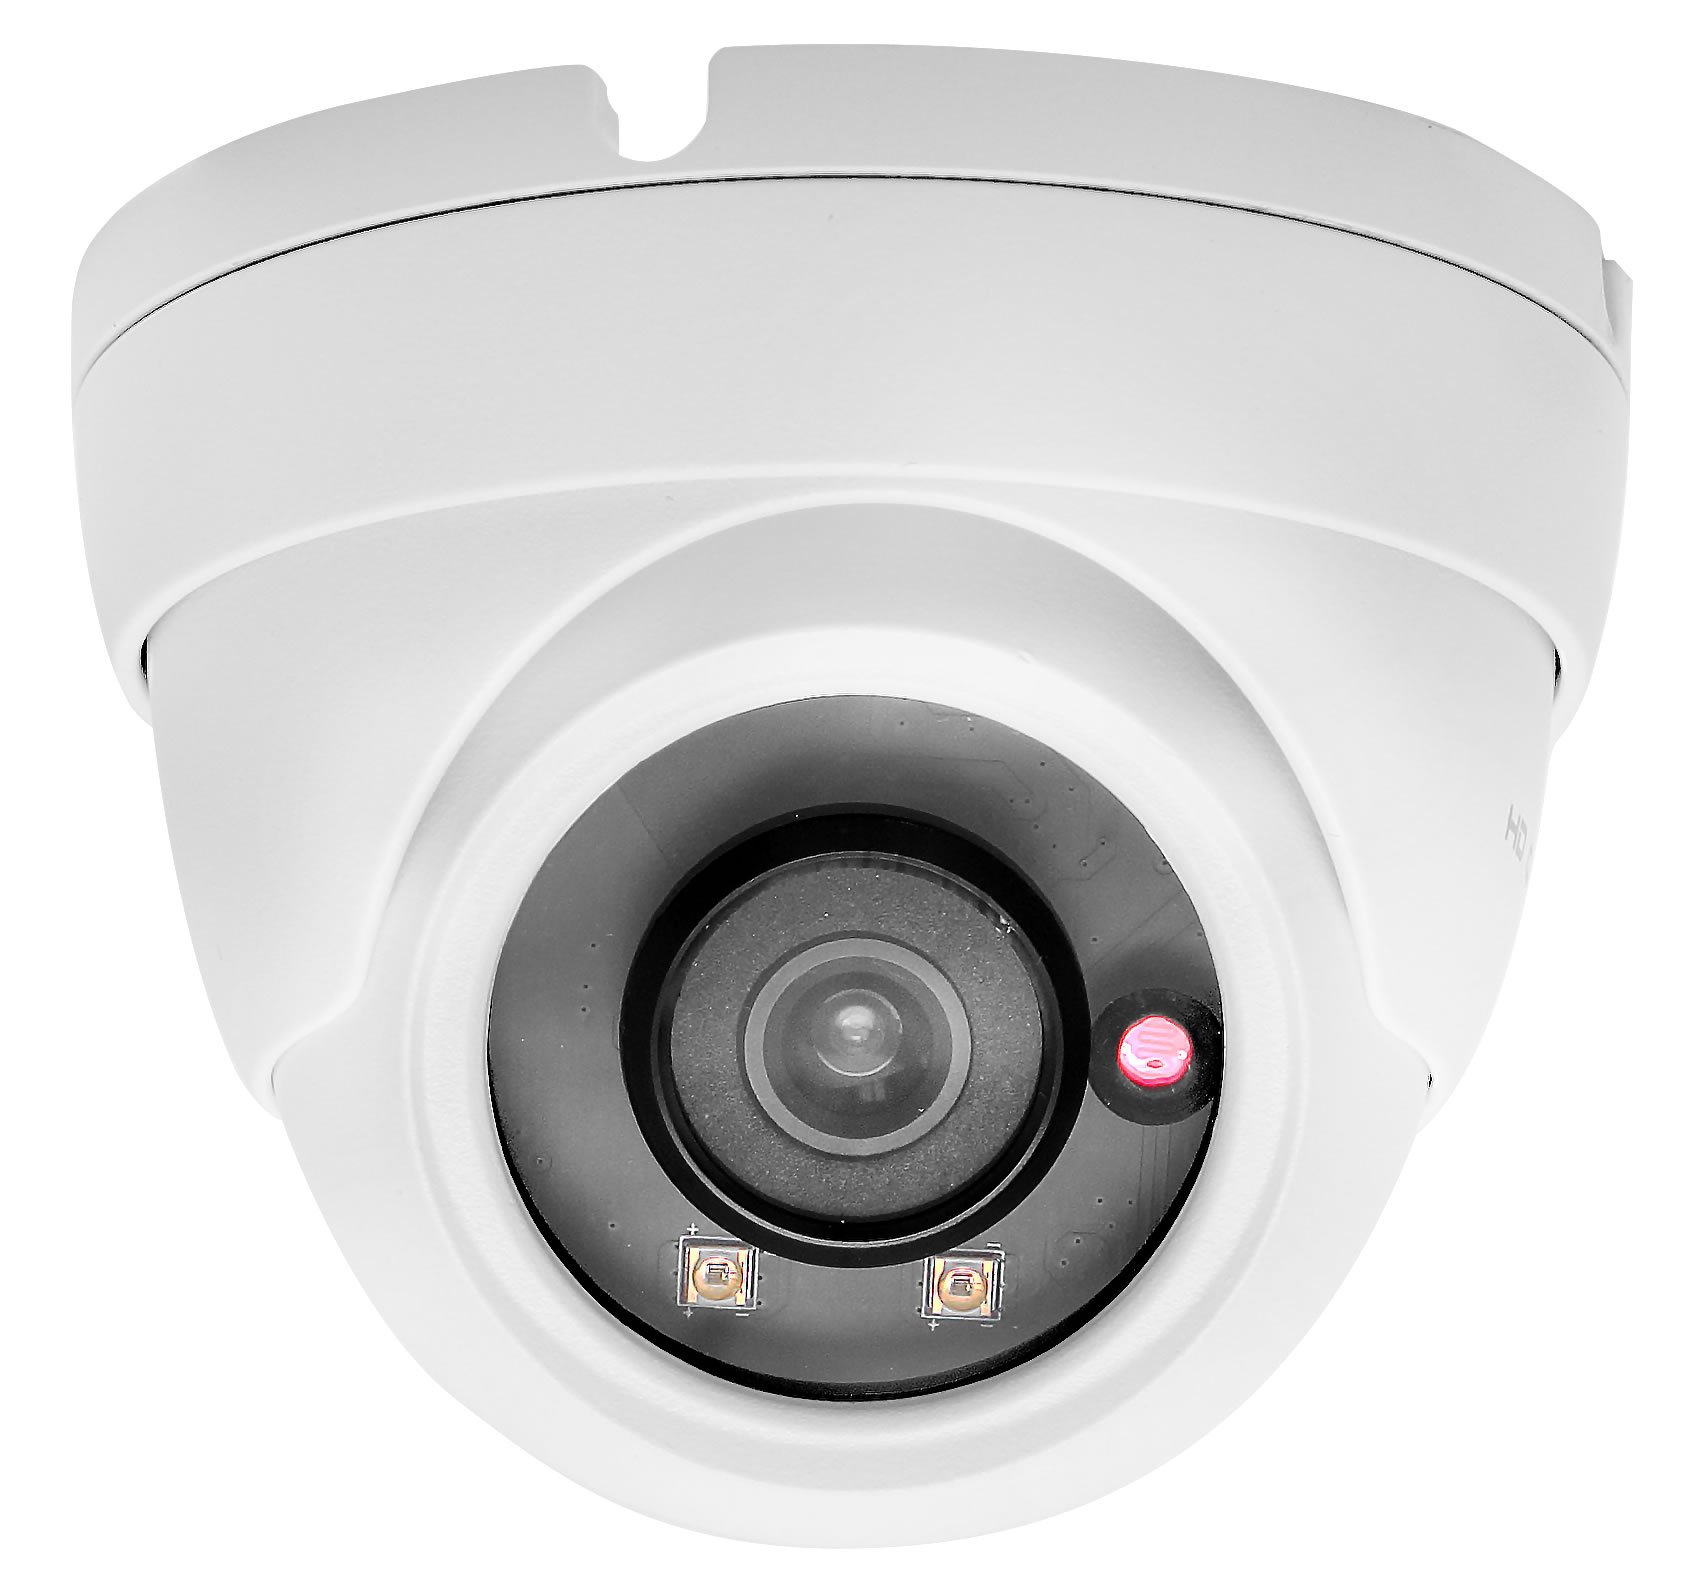 HDView (Business Series) Starlight IP Camera, Color at Night, 2MP Megapixel Network ONVIF PoE, SONY Sensor, 2.8mm Wide Angle Lens 3-Axis, Eyeball Dome